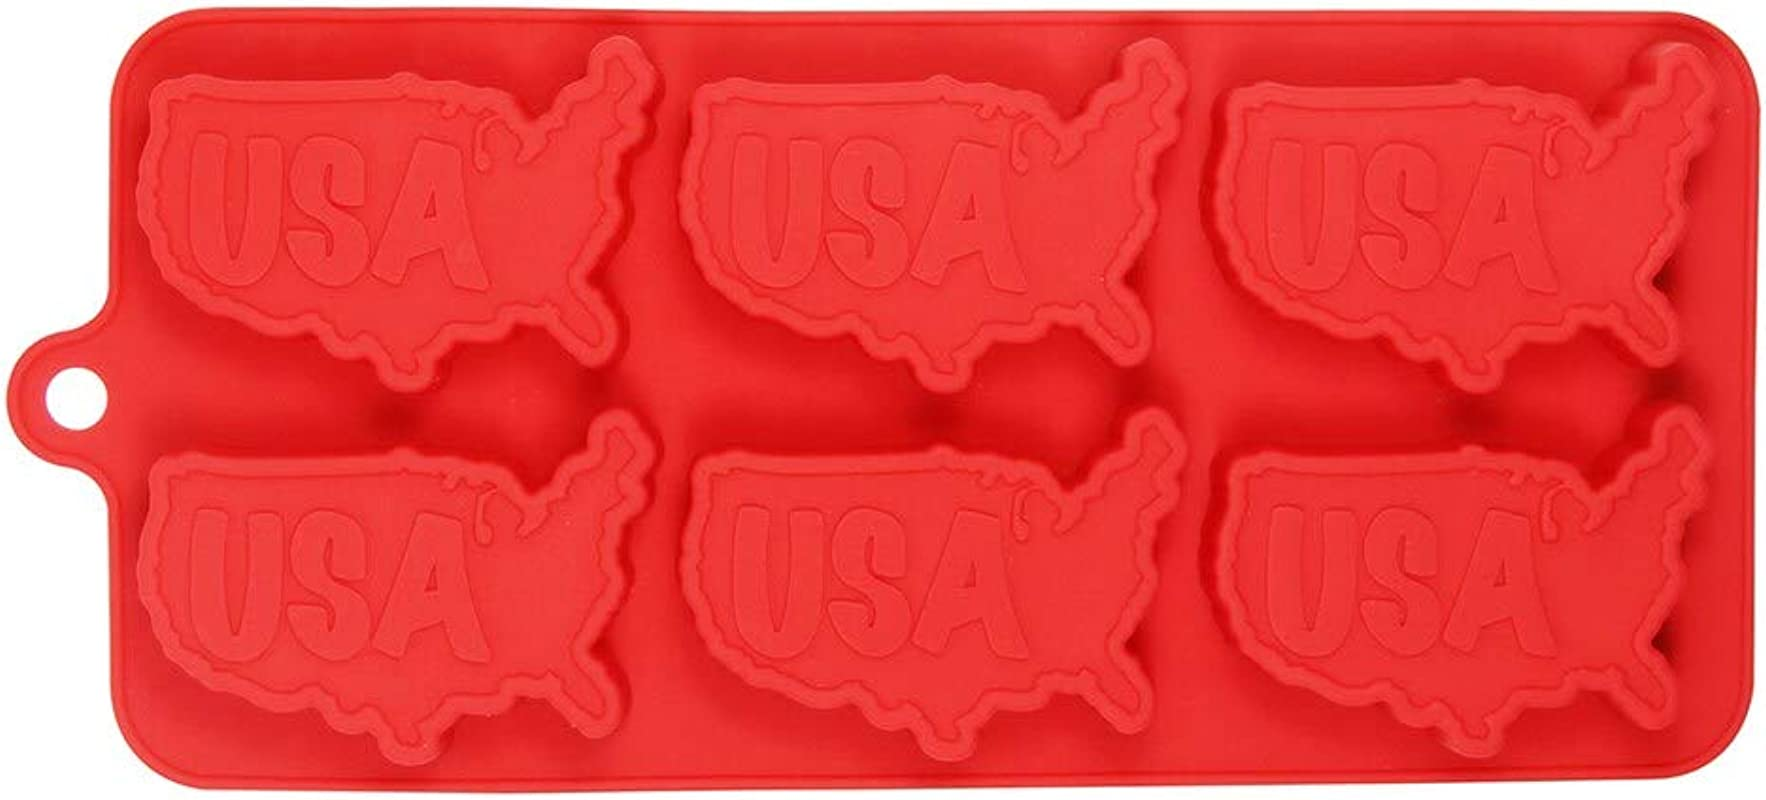 USA Shaped 6 Cavity Baking Mold Patriotic Silicone Baking Tray